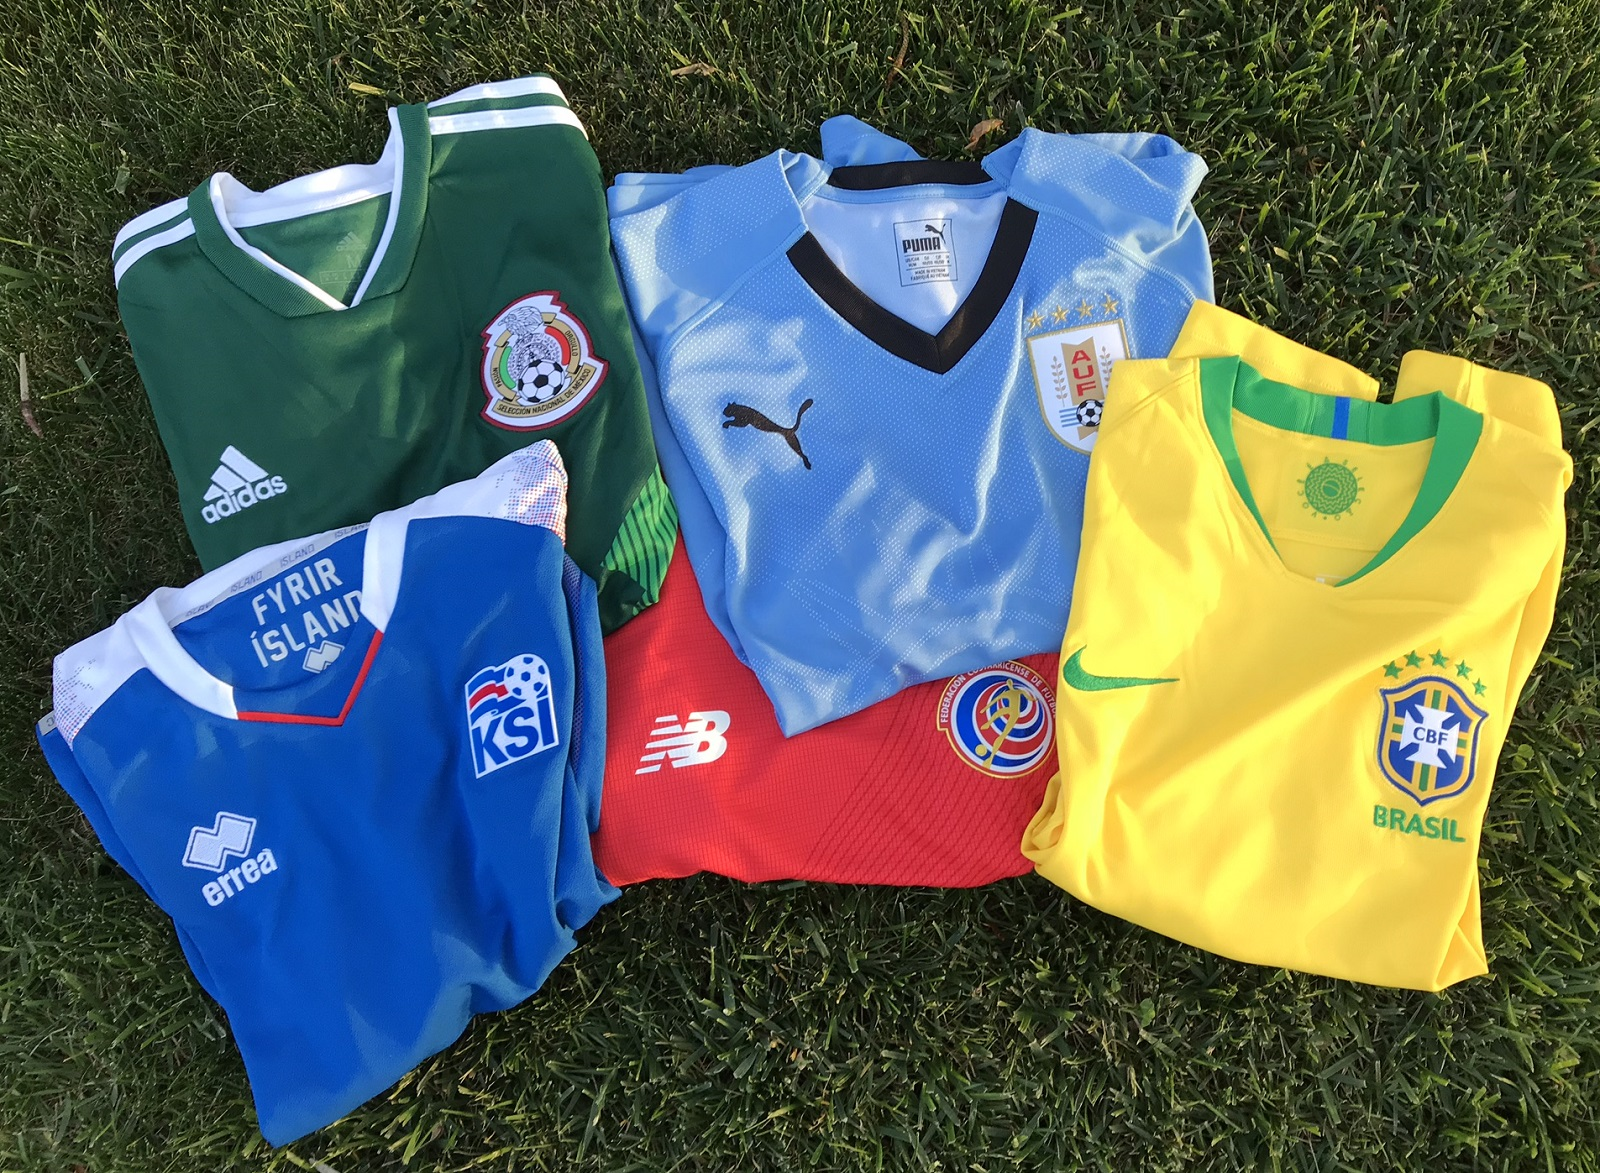 0f41dc80656 World Cup 2018 Jerseys - How Do They Fit? | Soccer Cleats 101